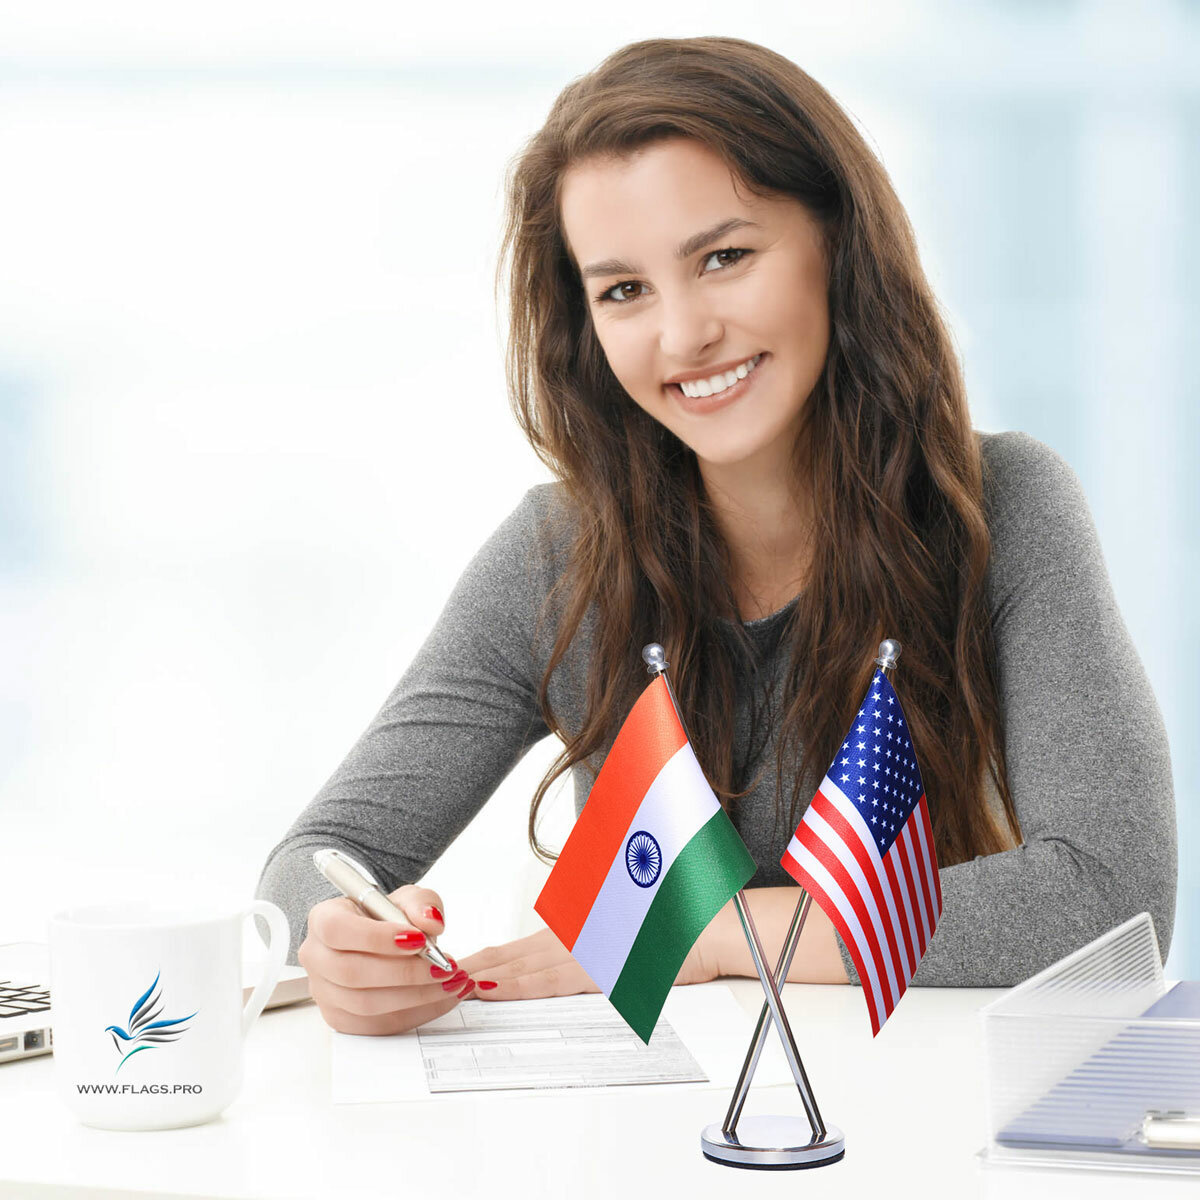 girl sitting at office desk with an indian and usa cross flag stainless steel stand